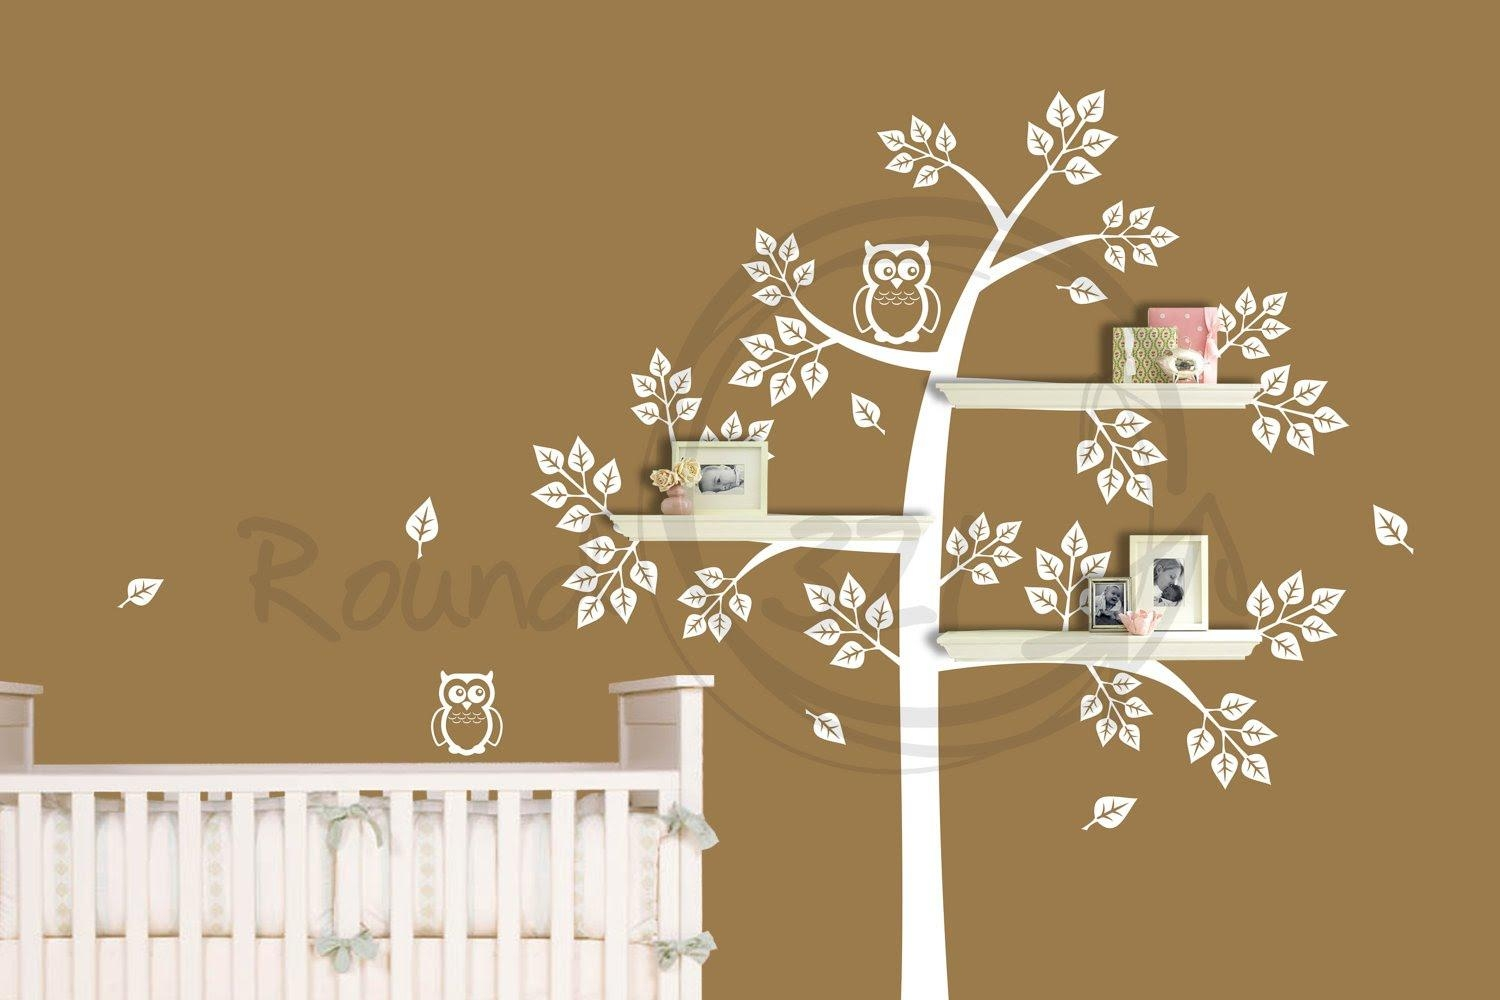 Baby Room Wall Decor~Baby Room Wall Art Ideas – Youtube Regarding Baby Wall Art (Image 7 of 20)